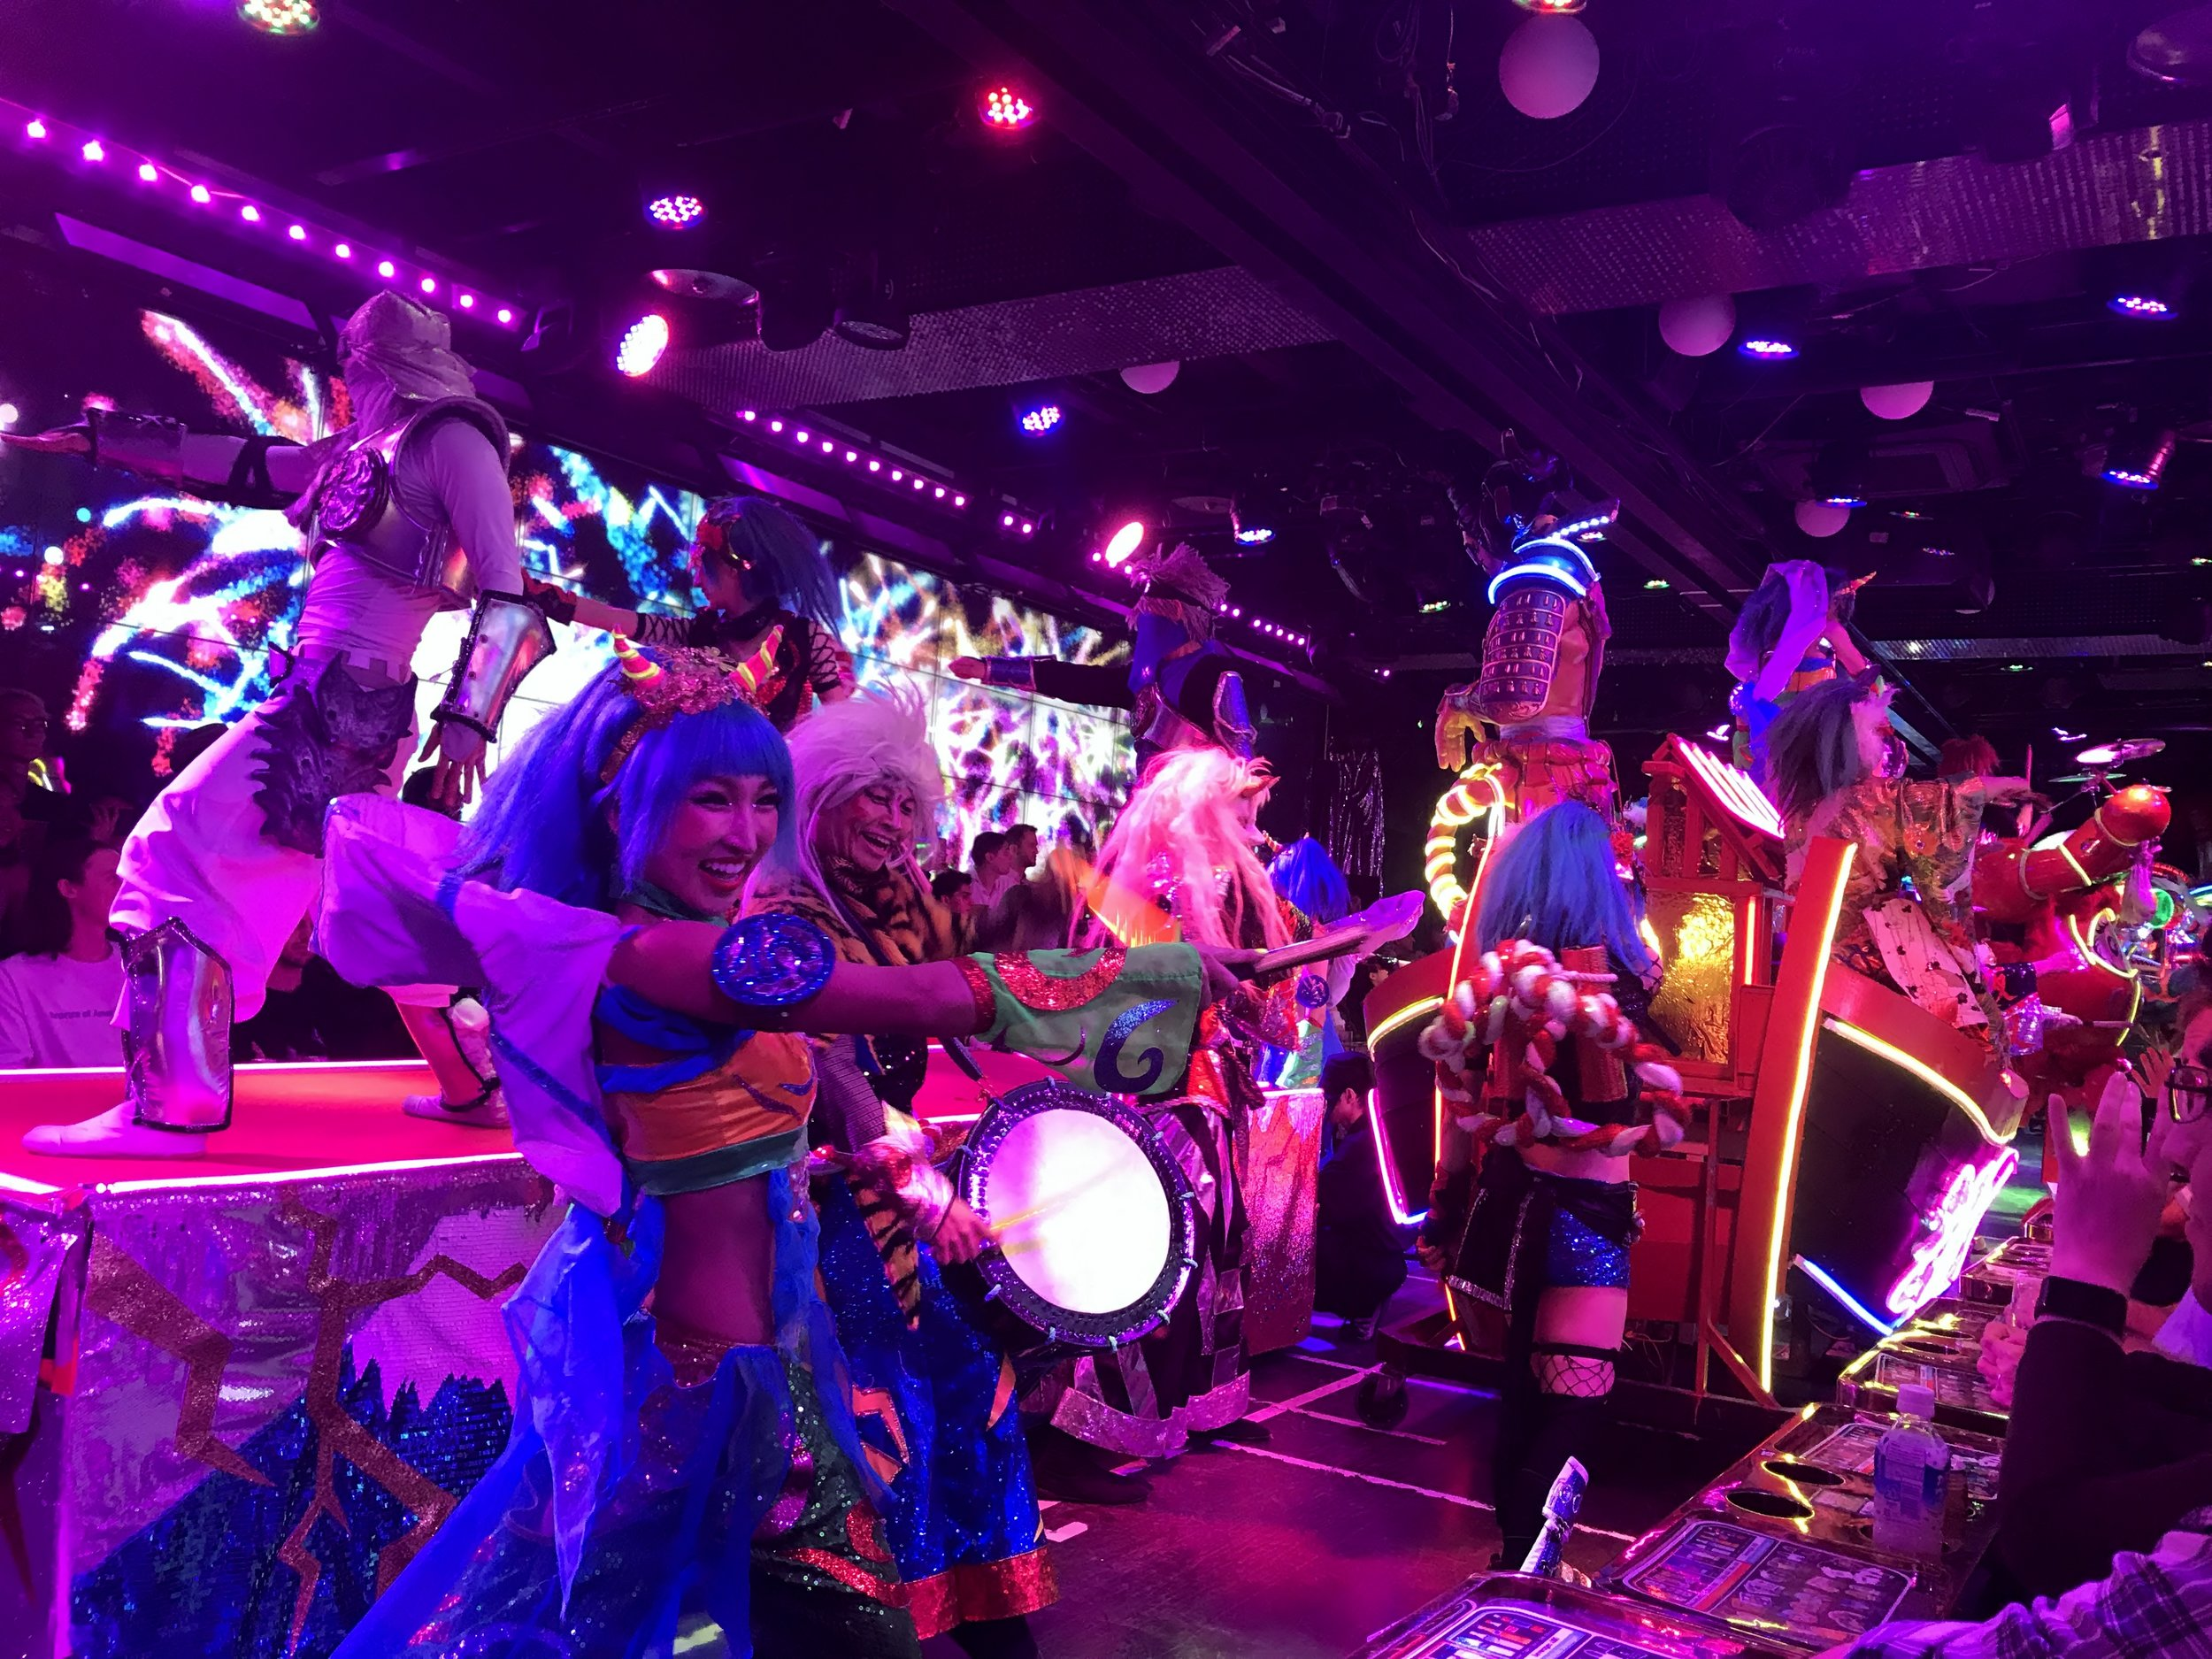 The final Performance at Robot restaurant